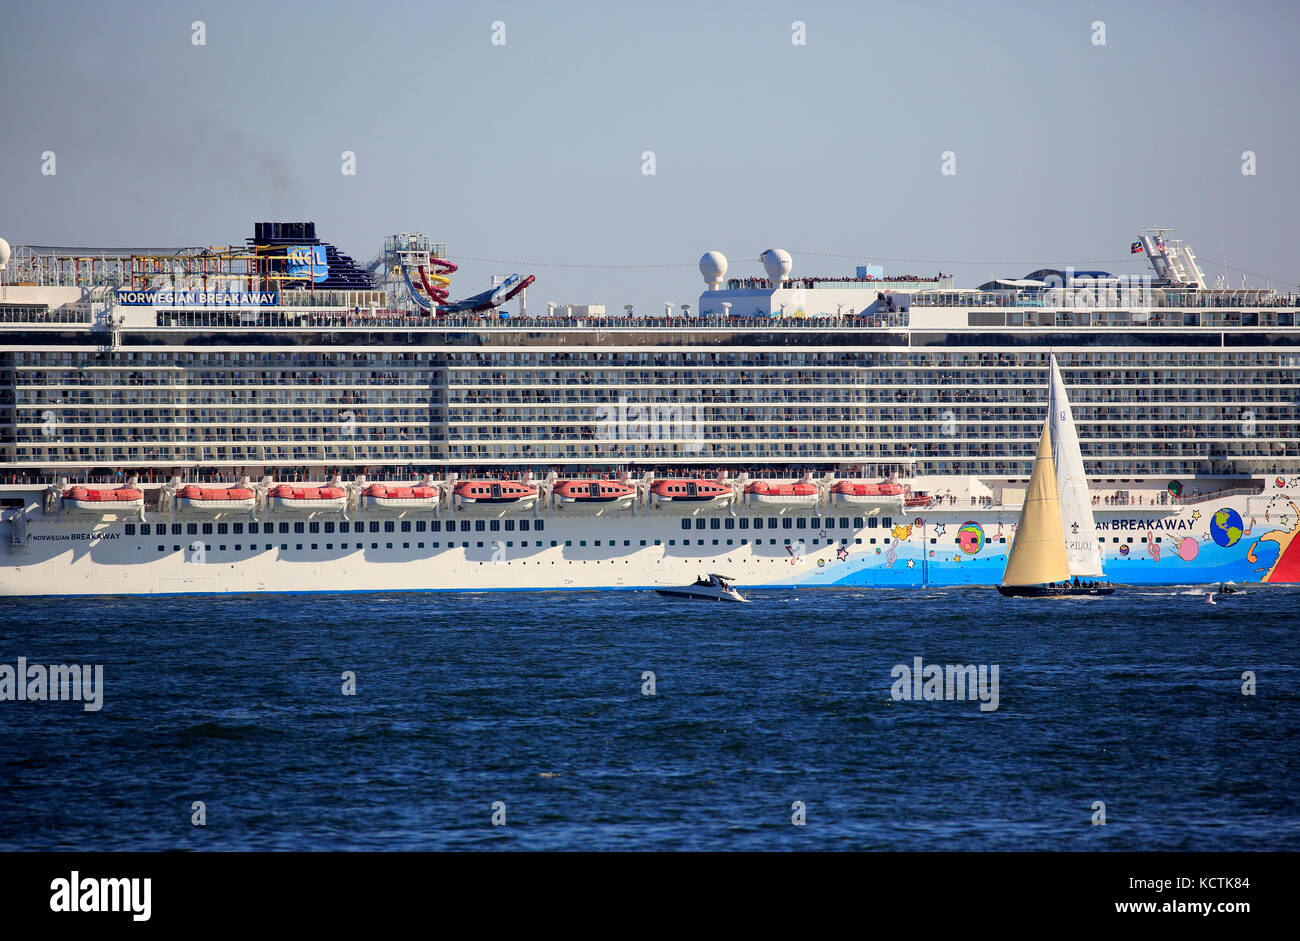 Norwegian Breakaway Cruise Ship in Hudson River with sailboat in foreground.New York City.USA - Stock Image